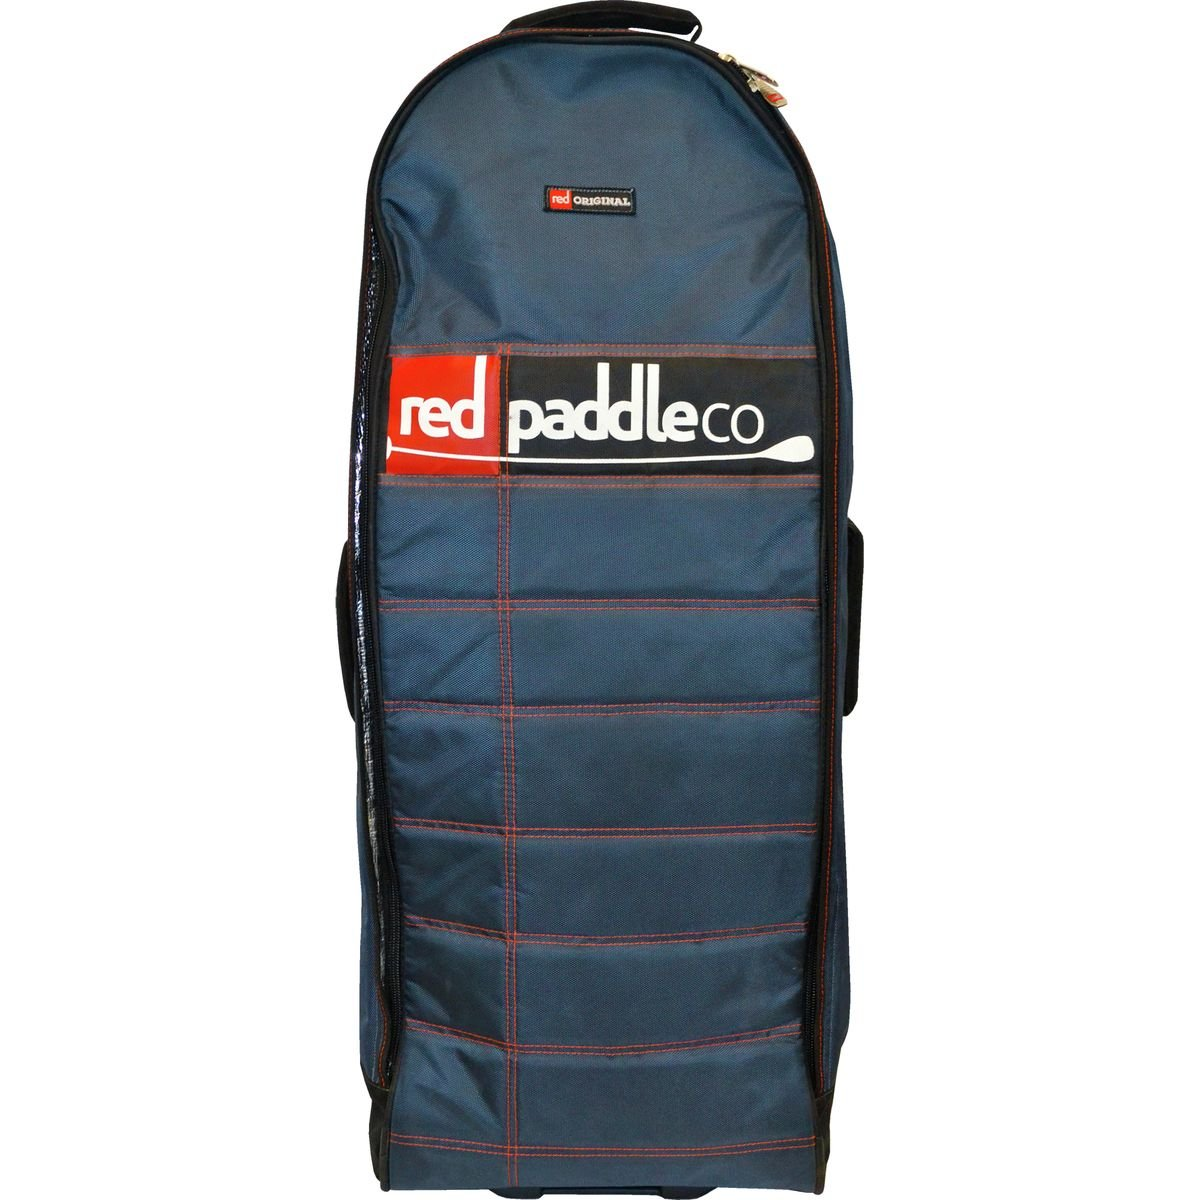 cf914cf30 Amazon.com: Red Paddle Co All Terrain Bag - Wheeled inflatable SUP back pack:  Sports & Outdoors